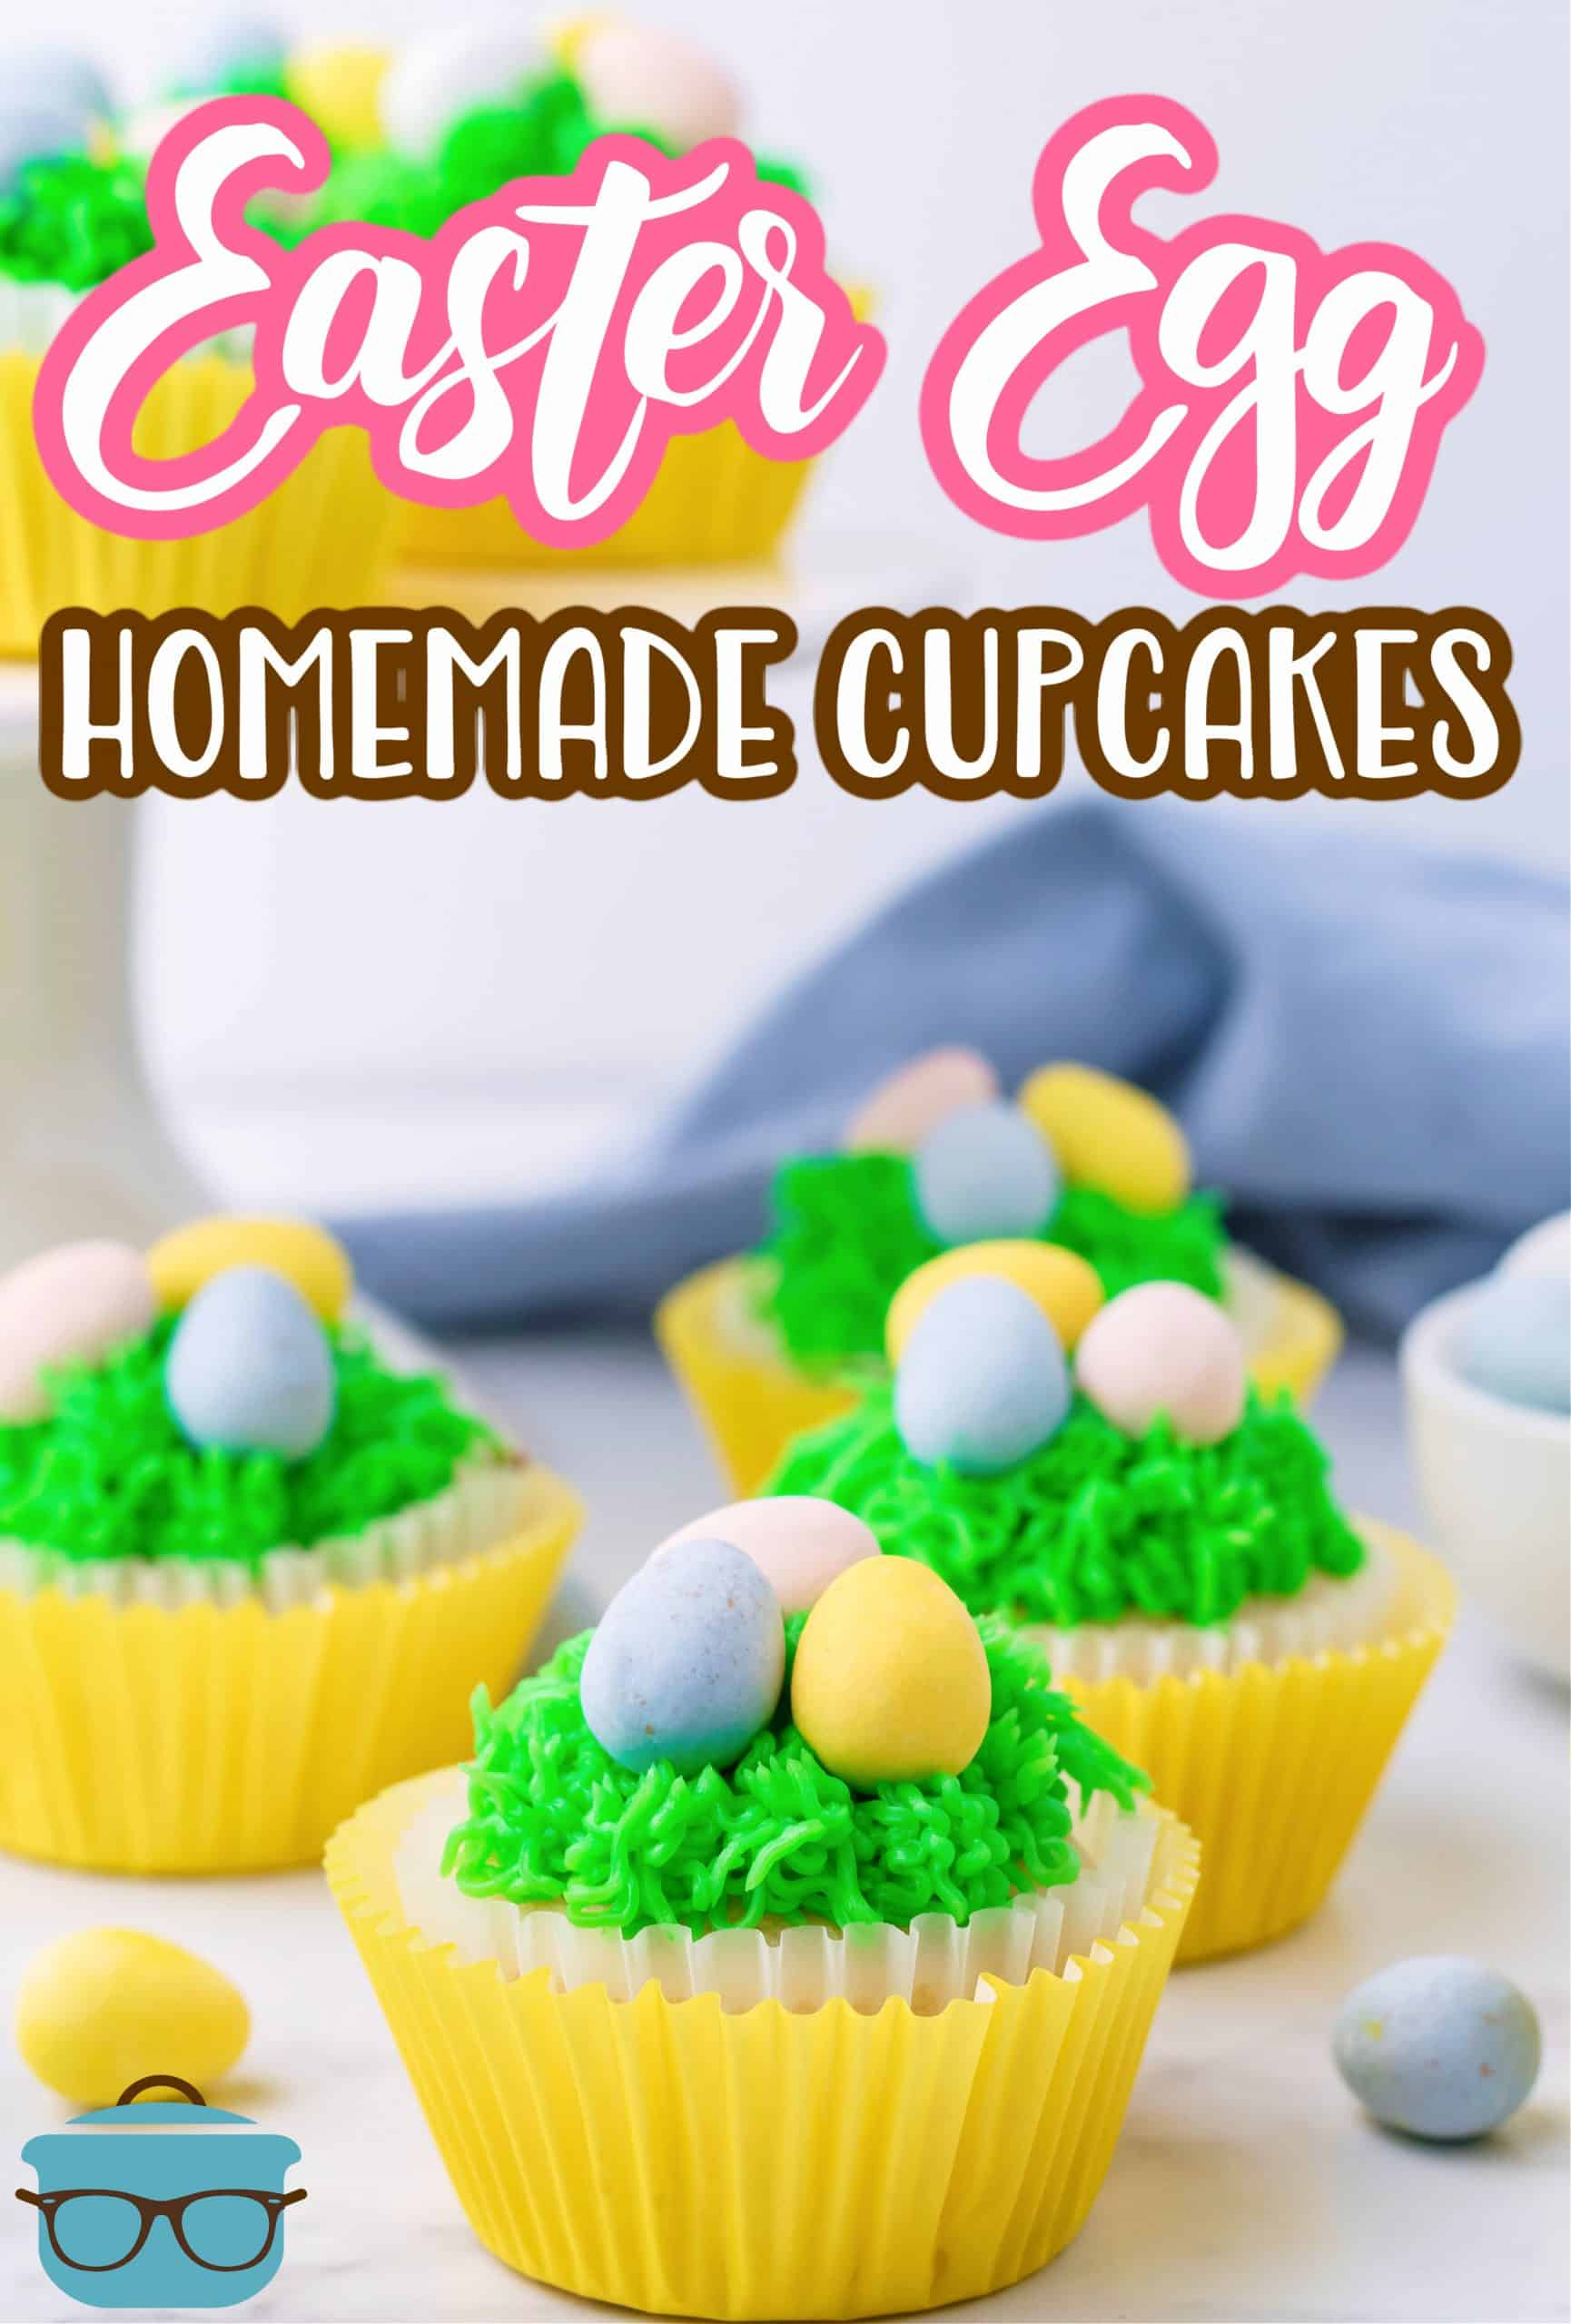 If you are looking for a cute and easy Easter project to do with the kids these Easter Egg Cupcakes are tasty, beautiful and seriously fun!